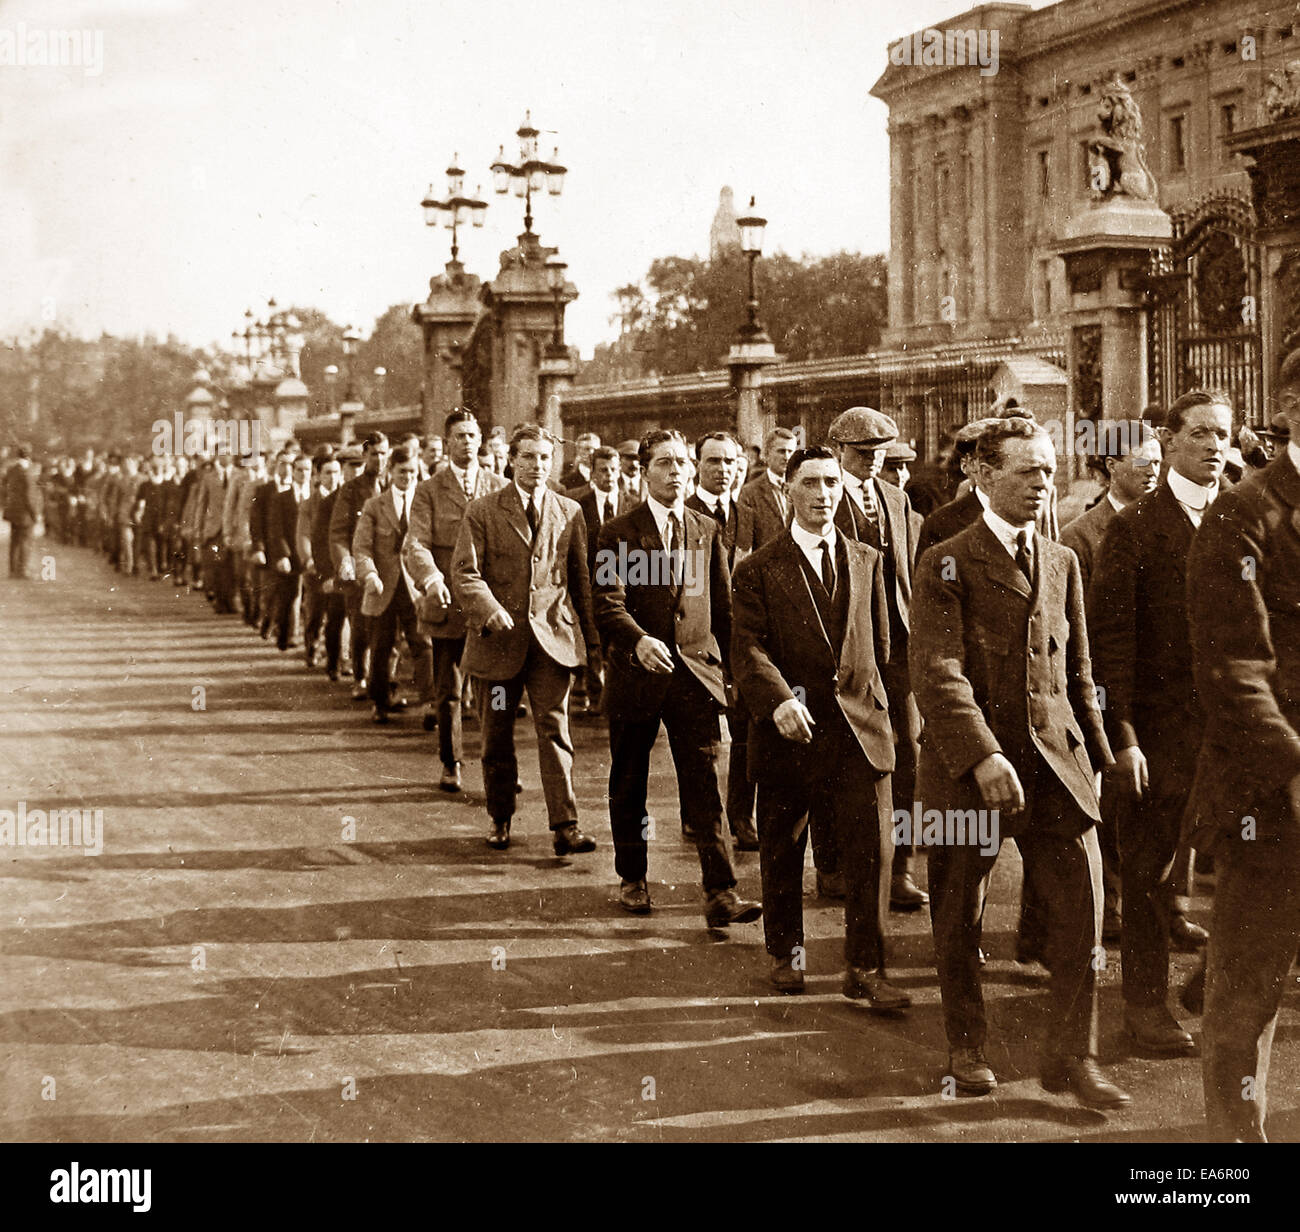 Recruits outside Buckingham Palace during WW1 - Stock Image